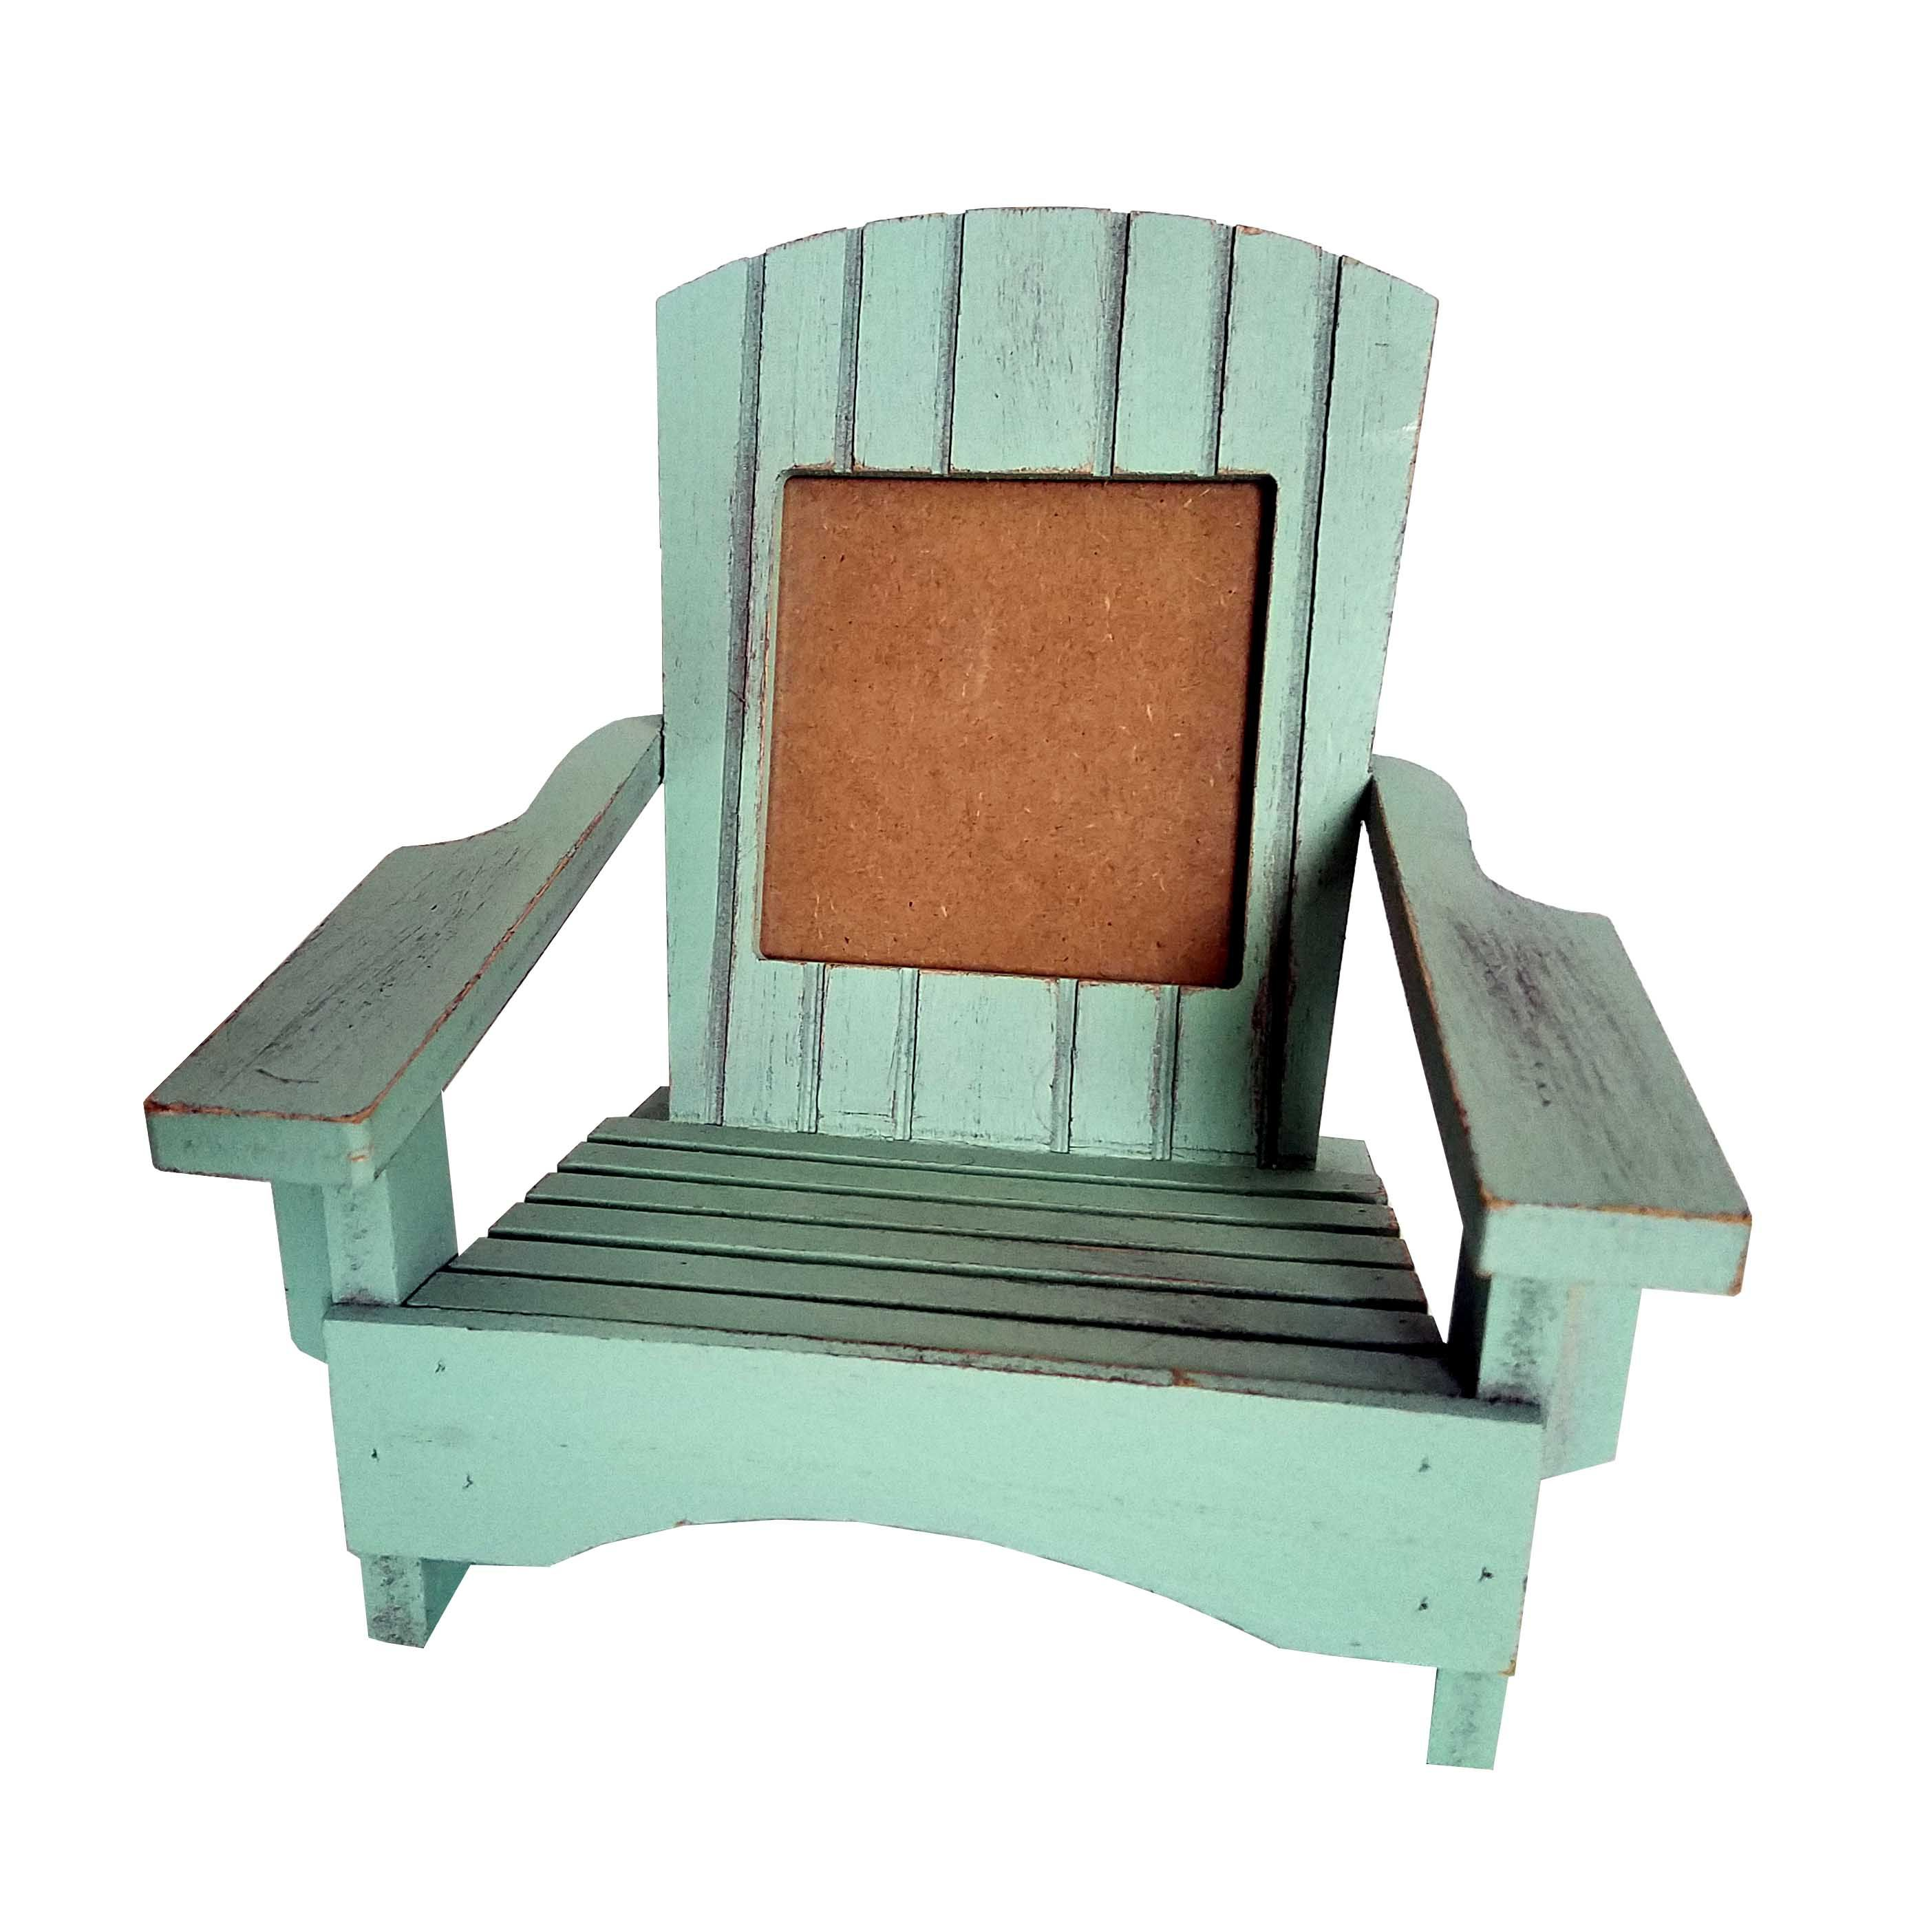 wooden frame beach chairs traditional barber chair photo stellasaksa photoframe